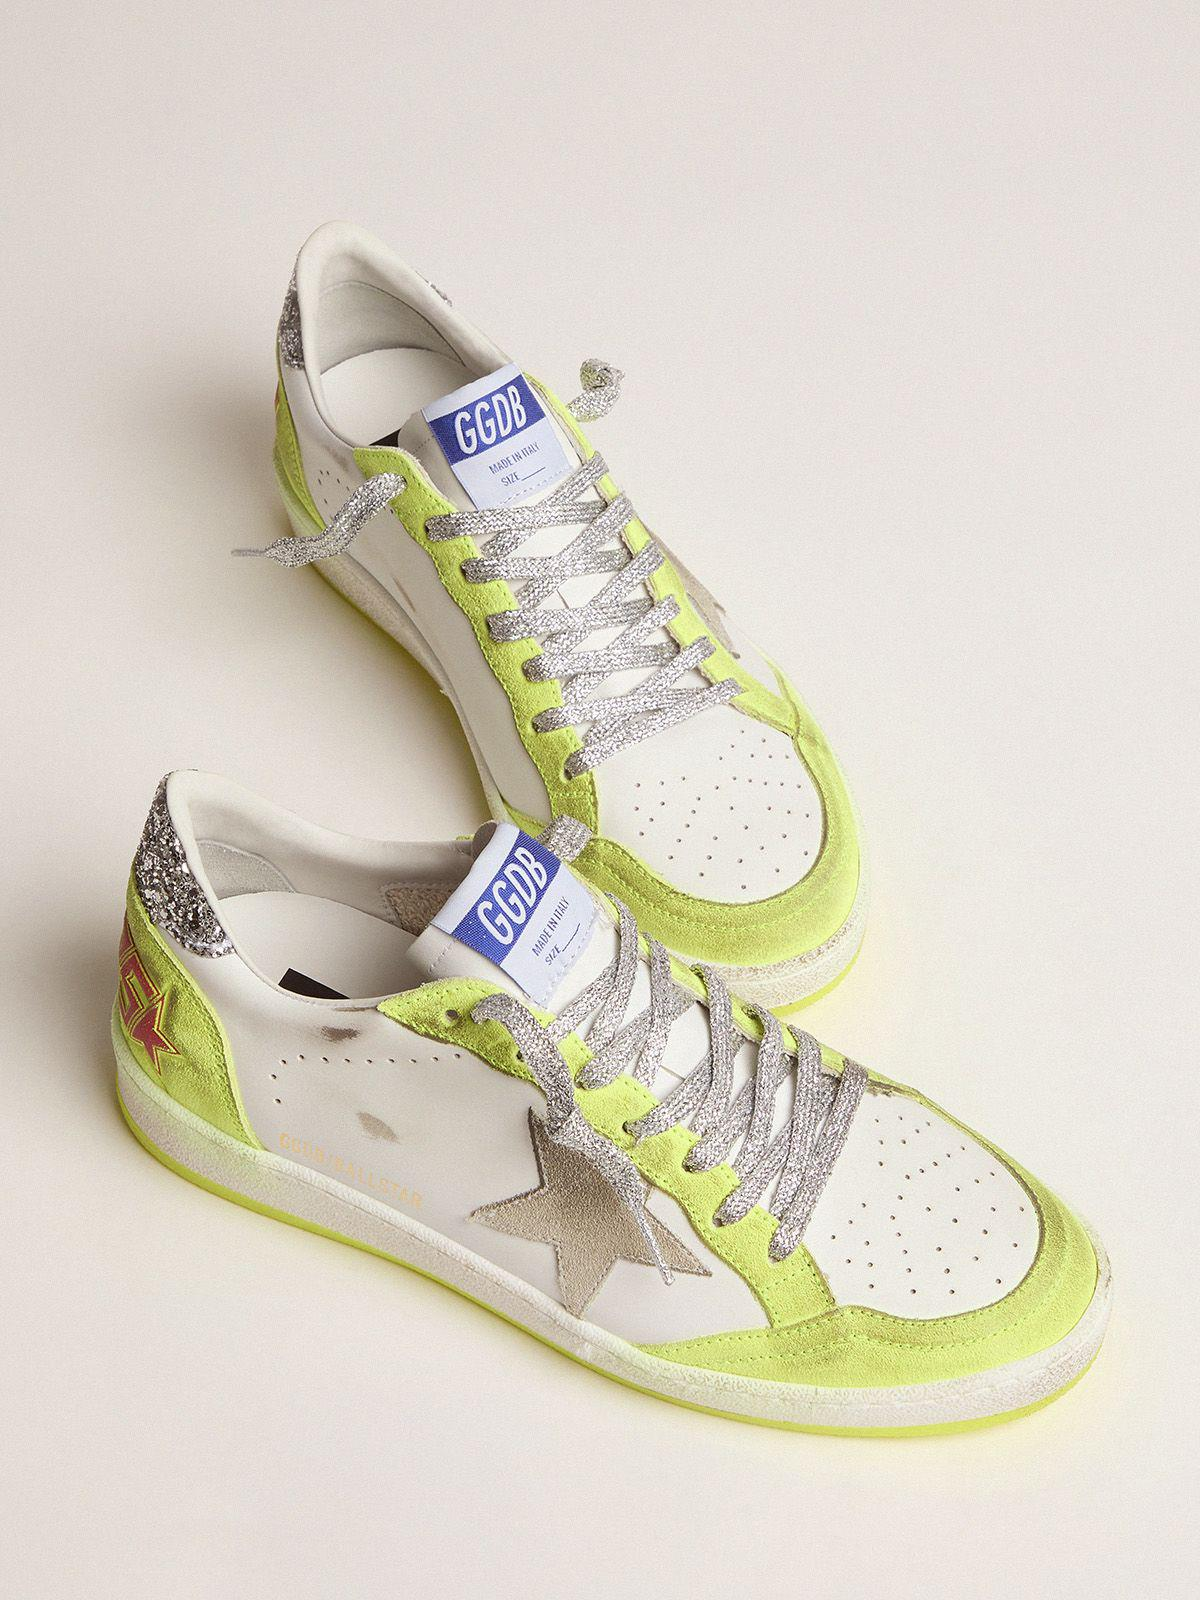 White Ball Star sneakers with fluorescent yellow inserts and glitter 1